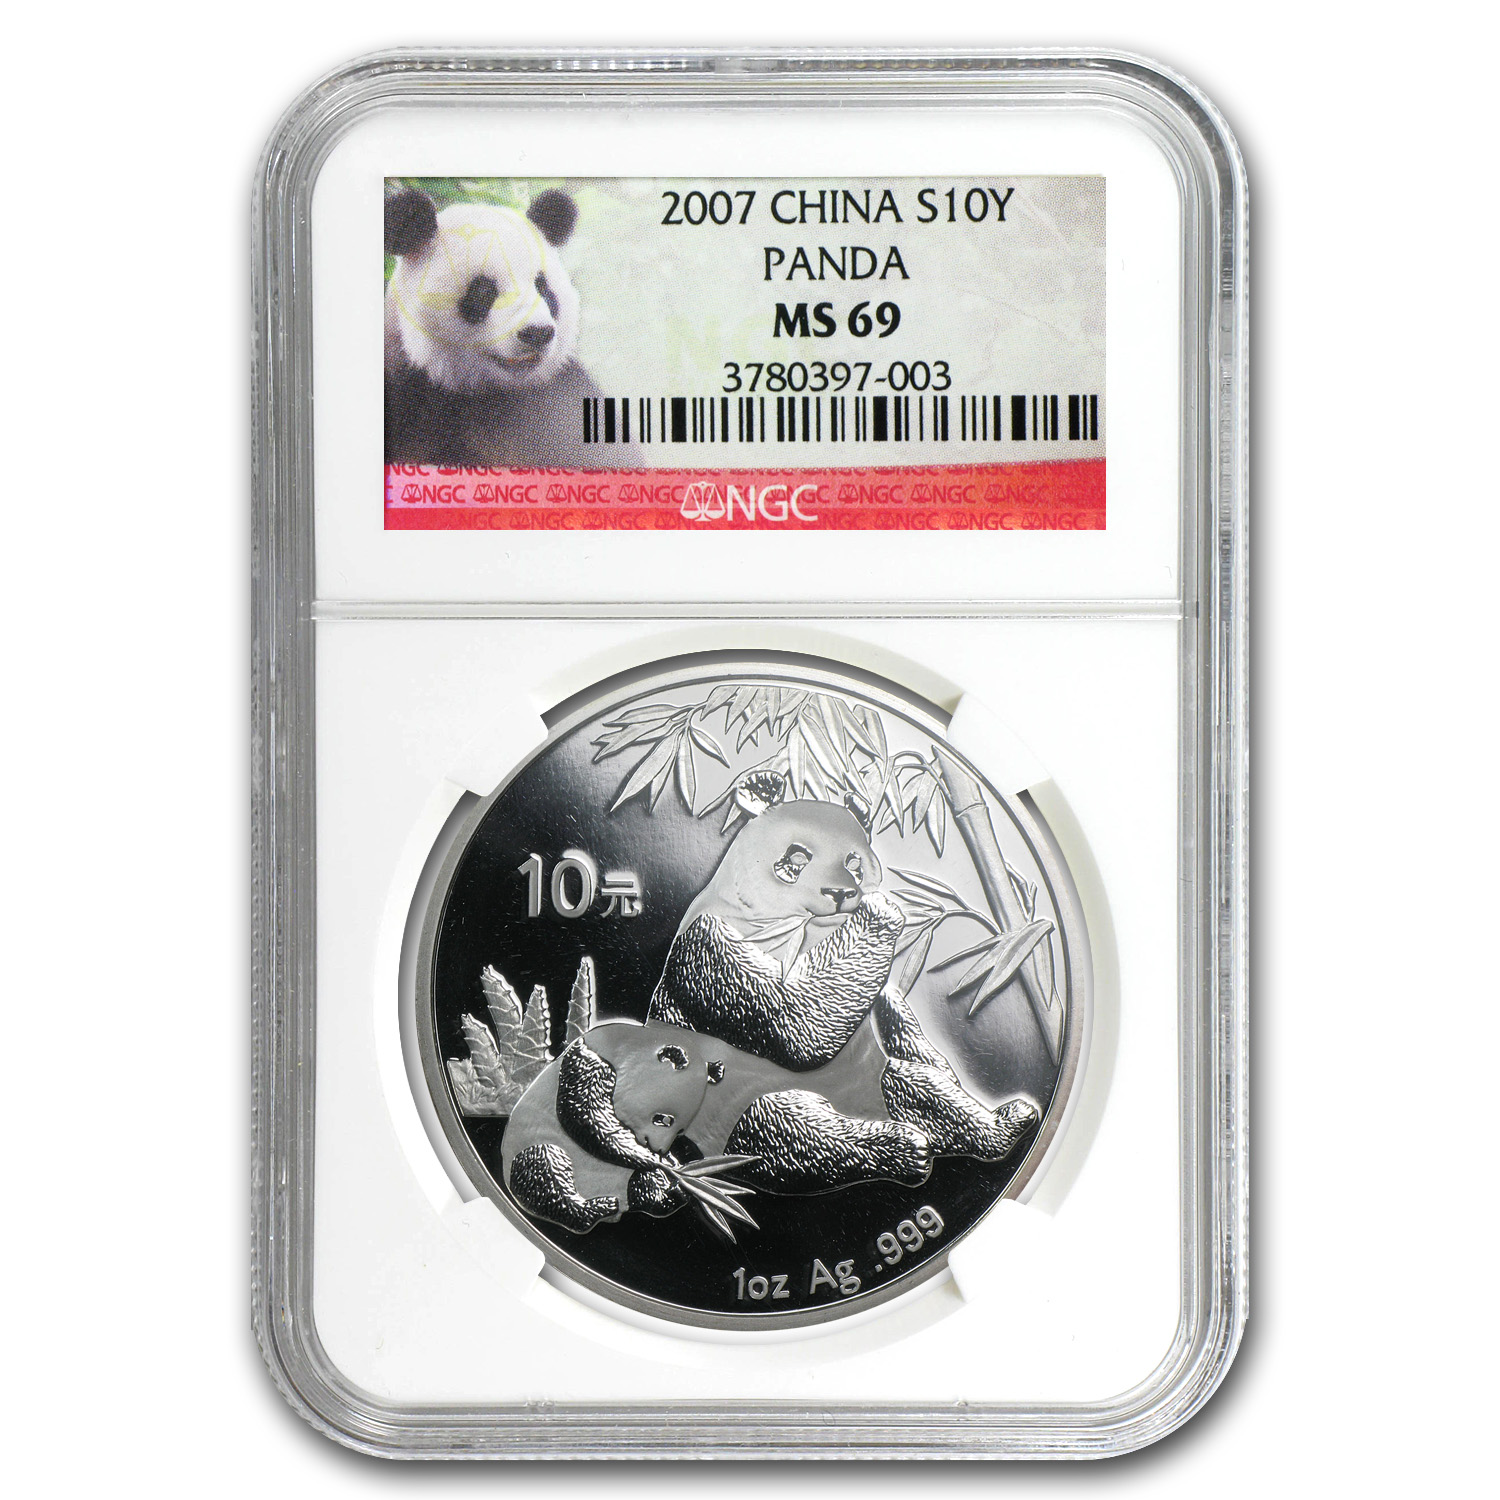 2007 1 oz Silver Chinese Panda - MS-69 NGC